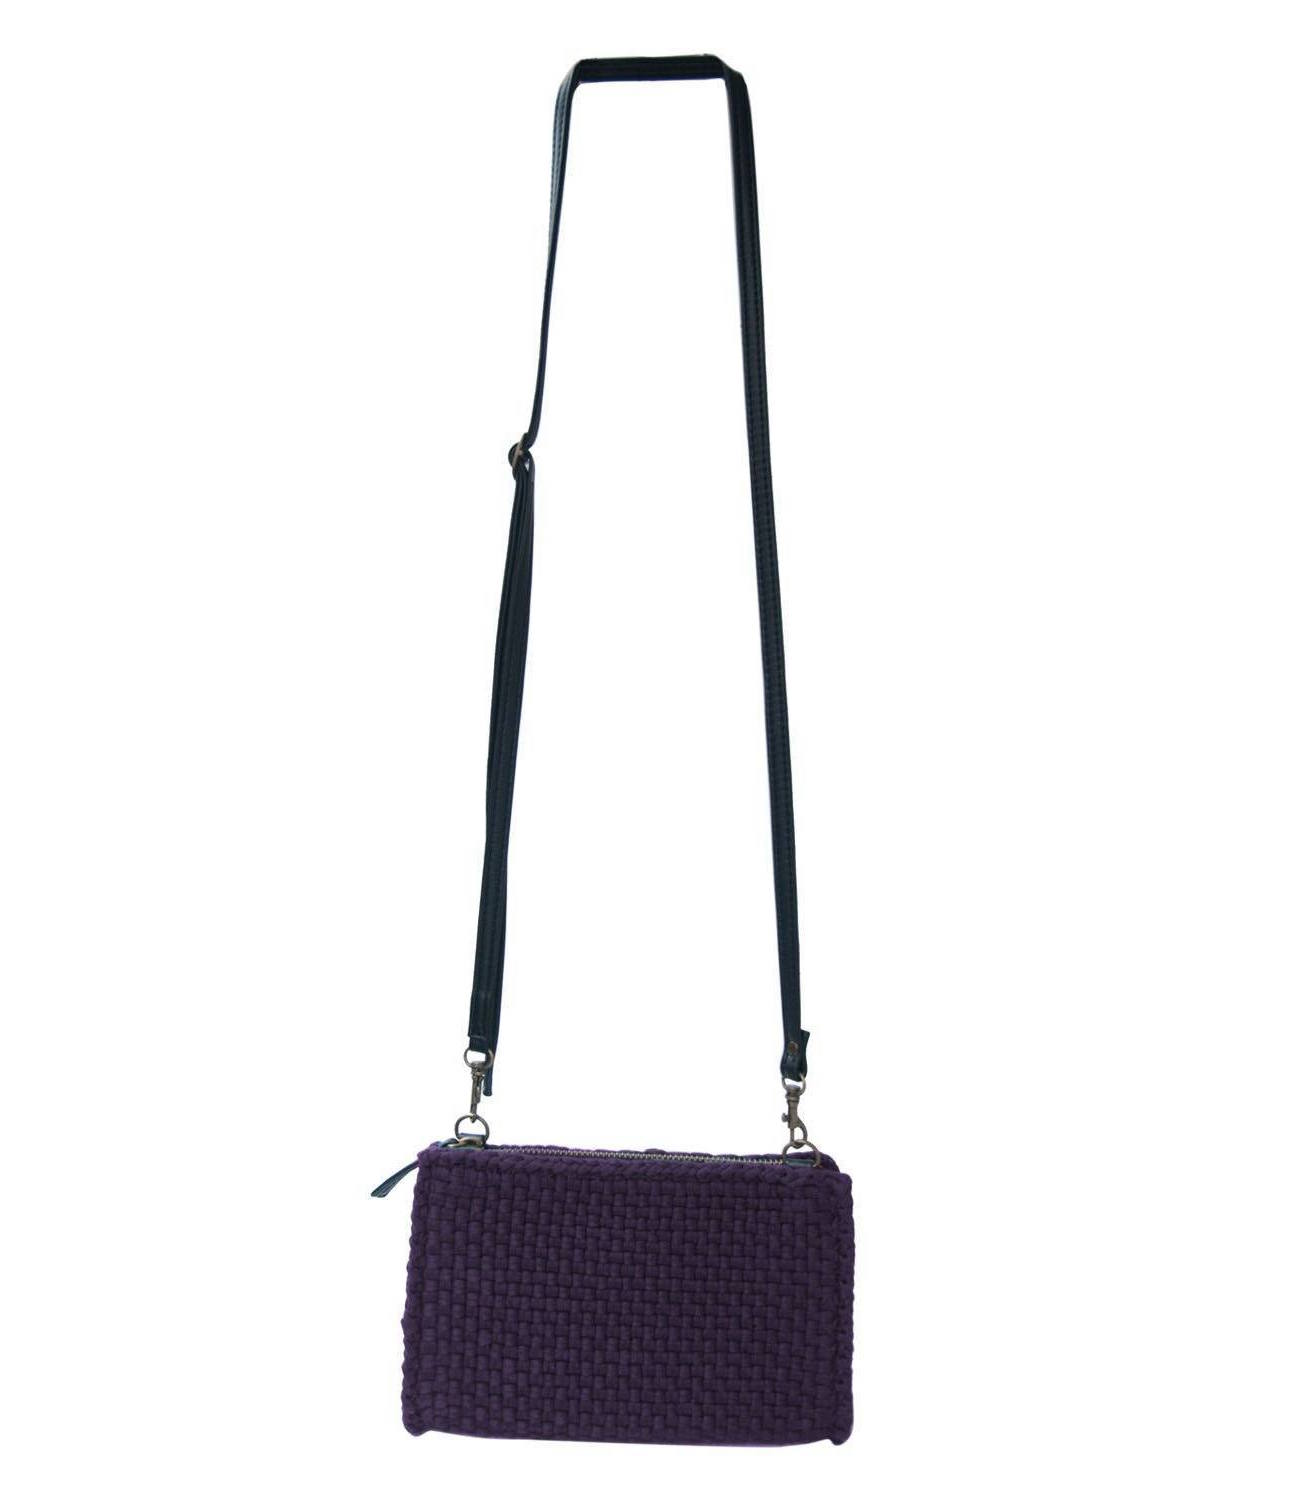 Clarence Travel Sling Bag in Eggplant - Rags2Riches